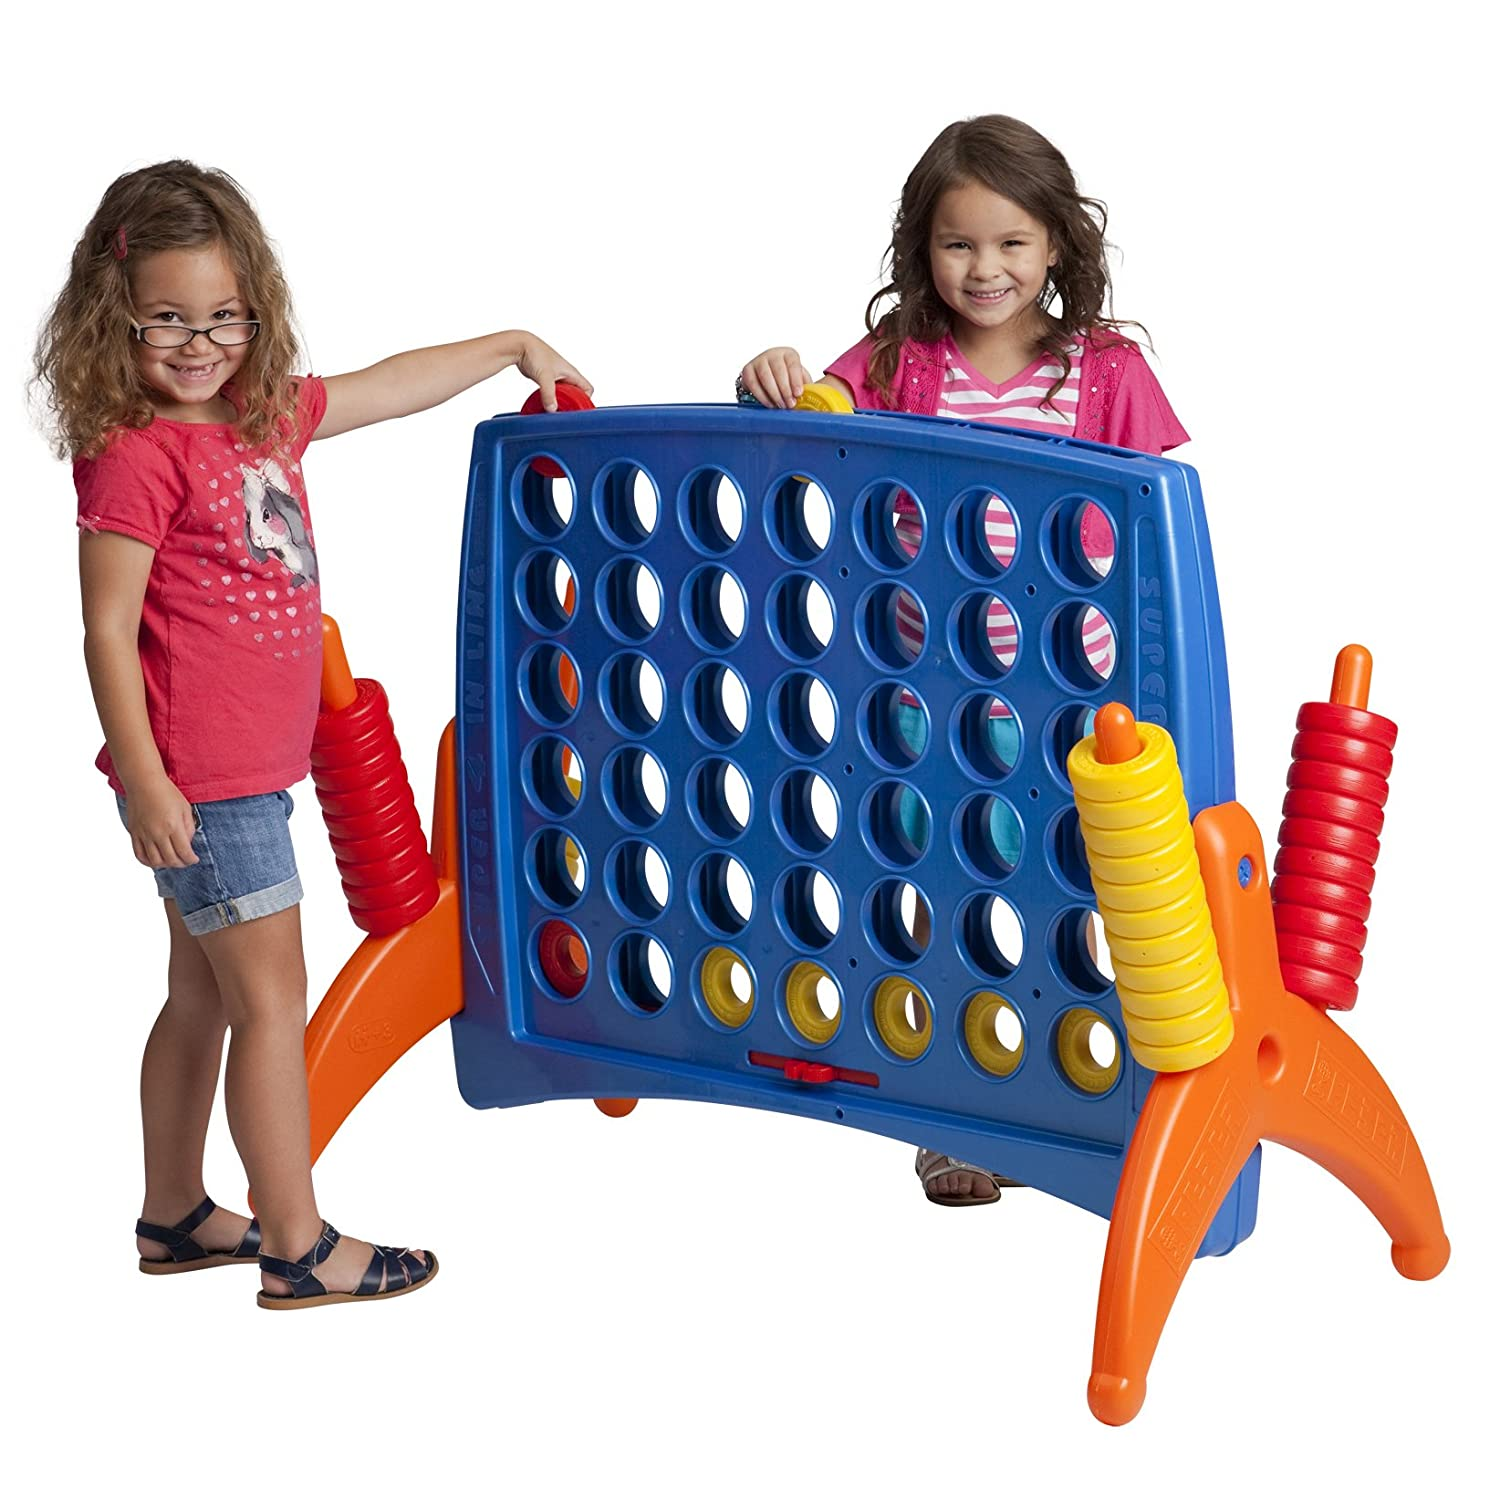 """47/"""" Jumbo 4-to-Score Toy Set,Fun Indoor /& Outdoor Connect Four Games for Kids Adults Family Party Safeplus Giant 4 in A Row Classic Game Set"""